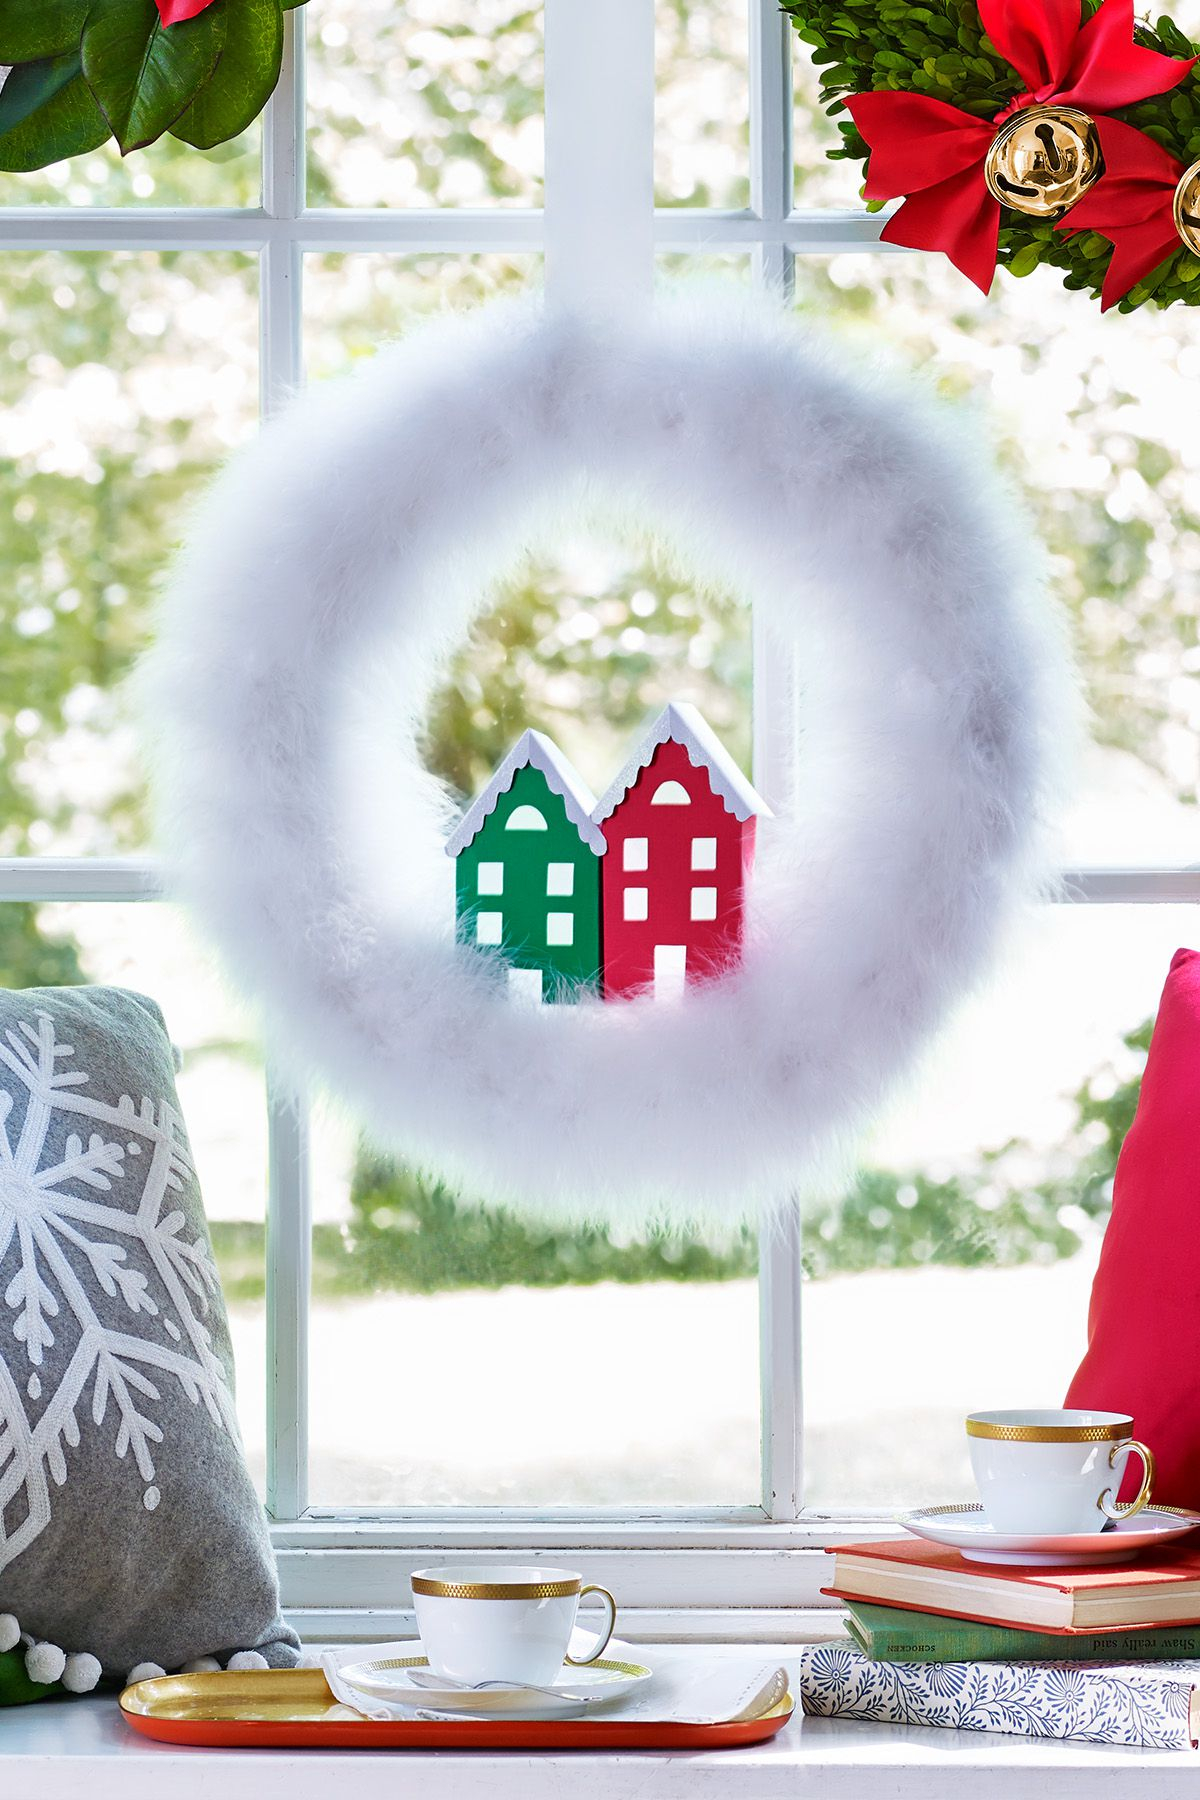 3 Unique Designs of Paper Plate Santa Craft 71 Easy Christmas Crafts Simple Diy Holiday Craft Ideas Projects